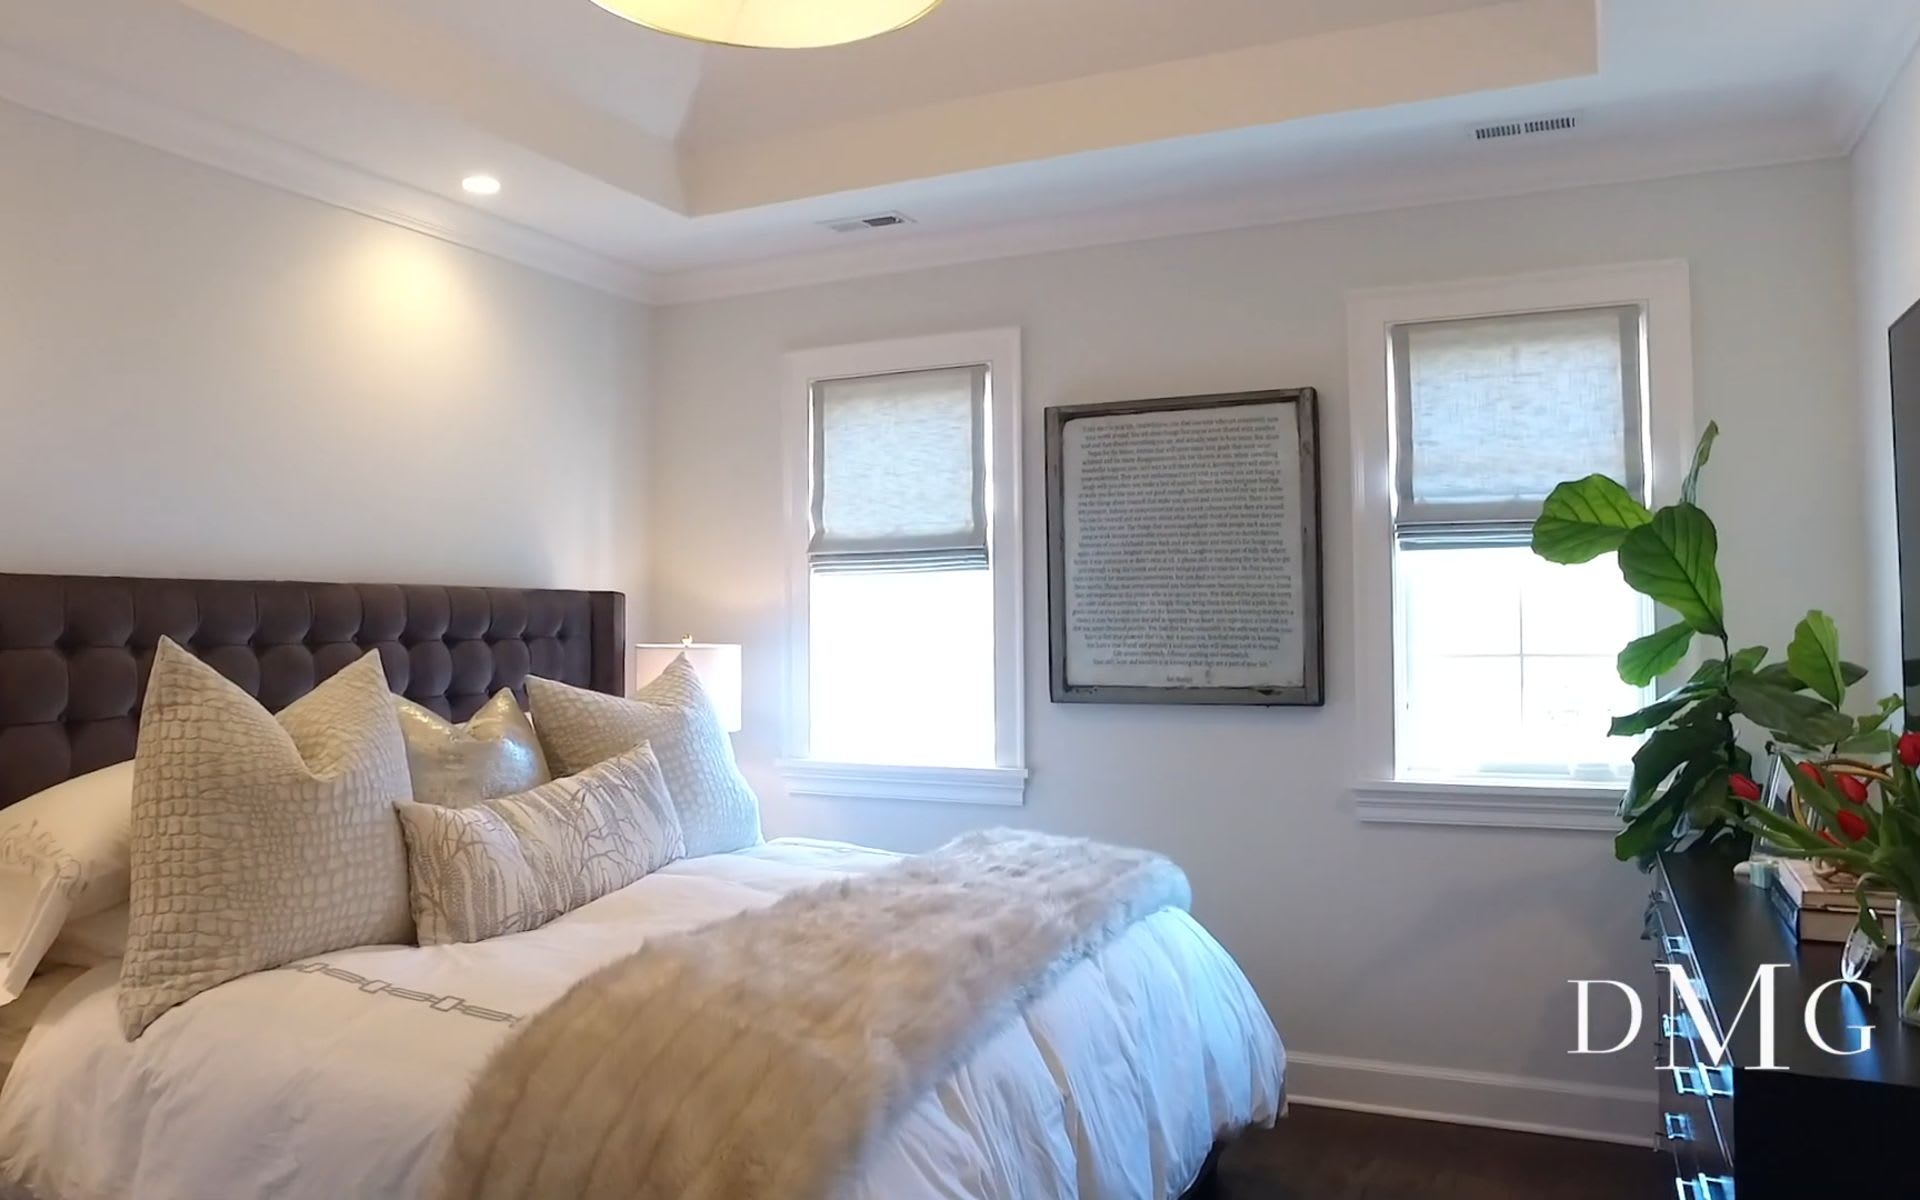 715 SOUTH ADAMS STREET, HINSDALE, IL DAWN MCKENNA GROUP video preview